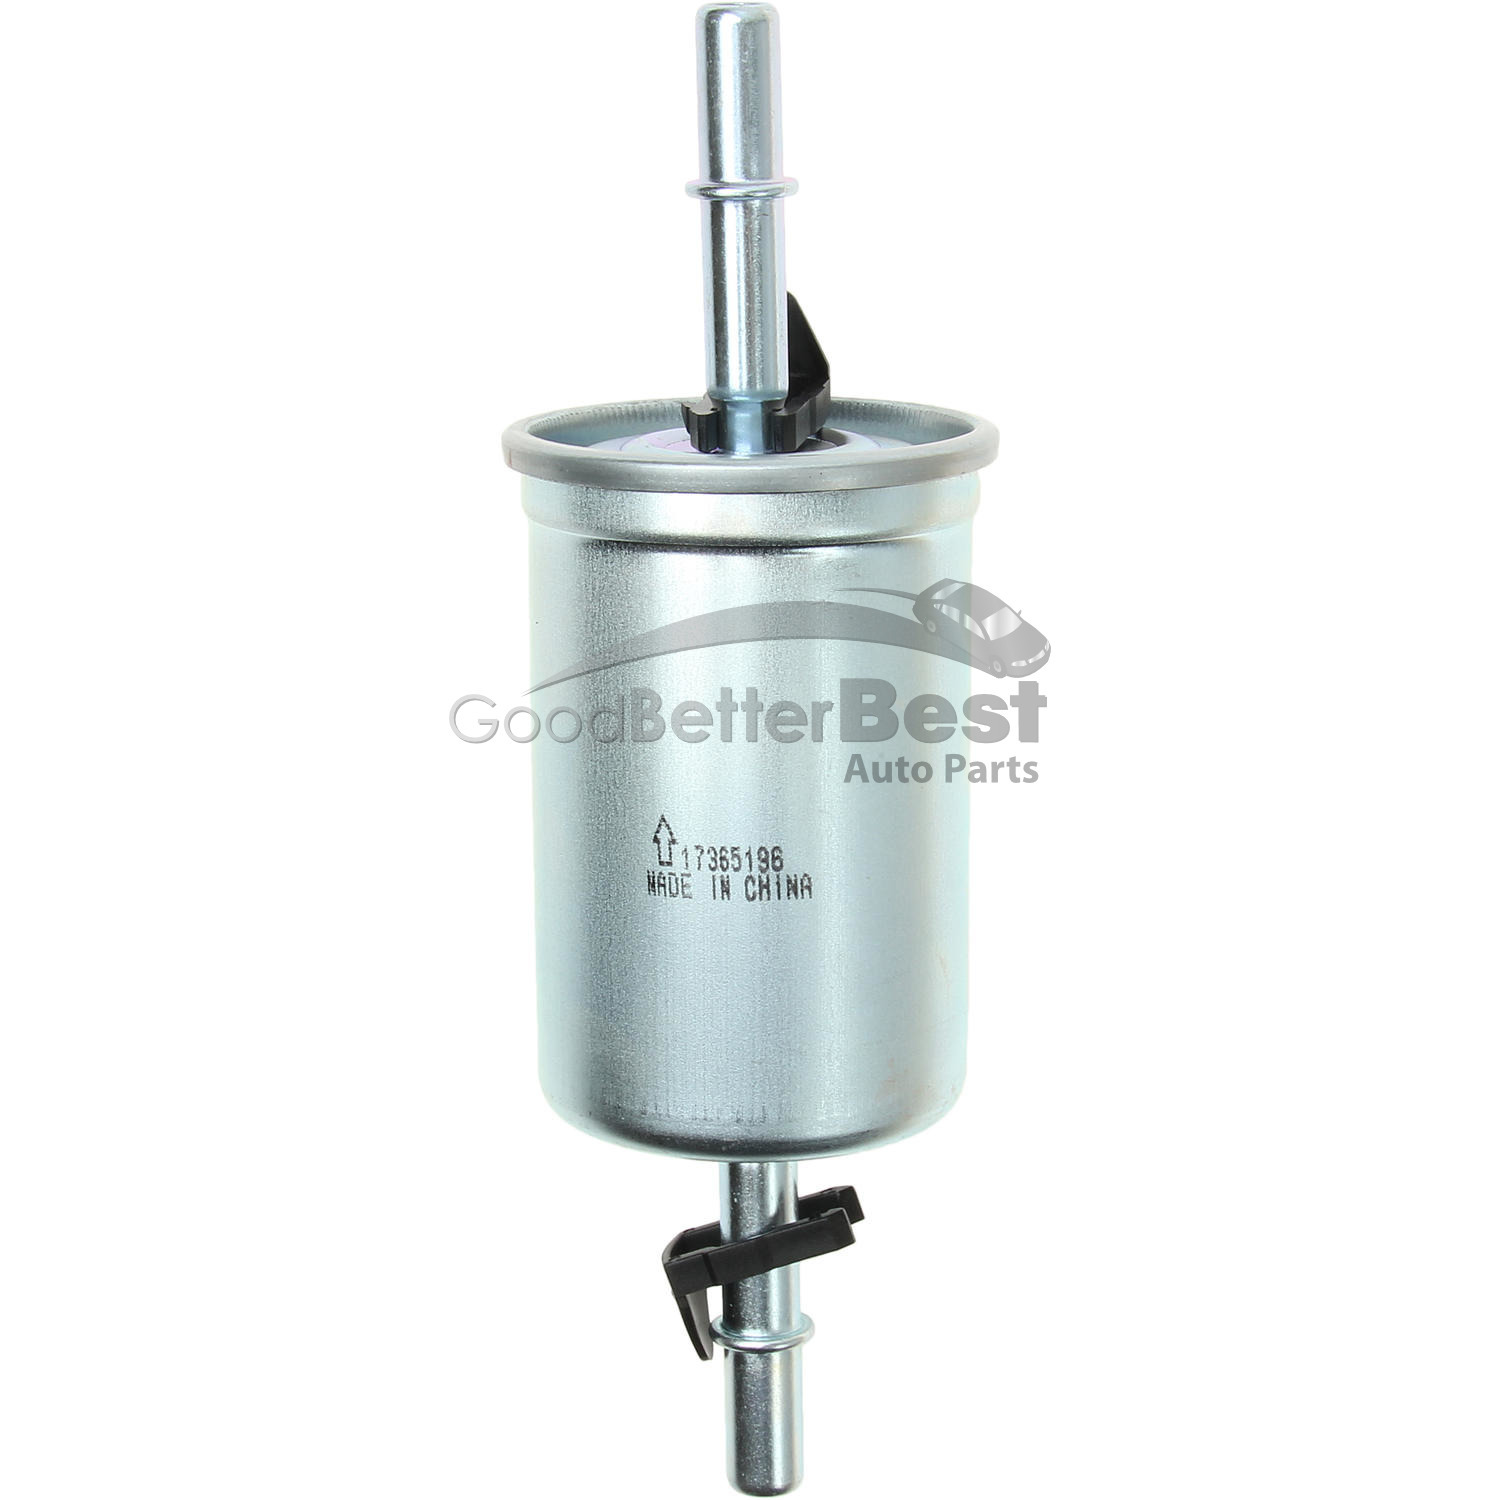 One New OPparts Fuel Filter 12718012 2C5Z9155BC for Ford Lincoln Mercury